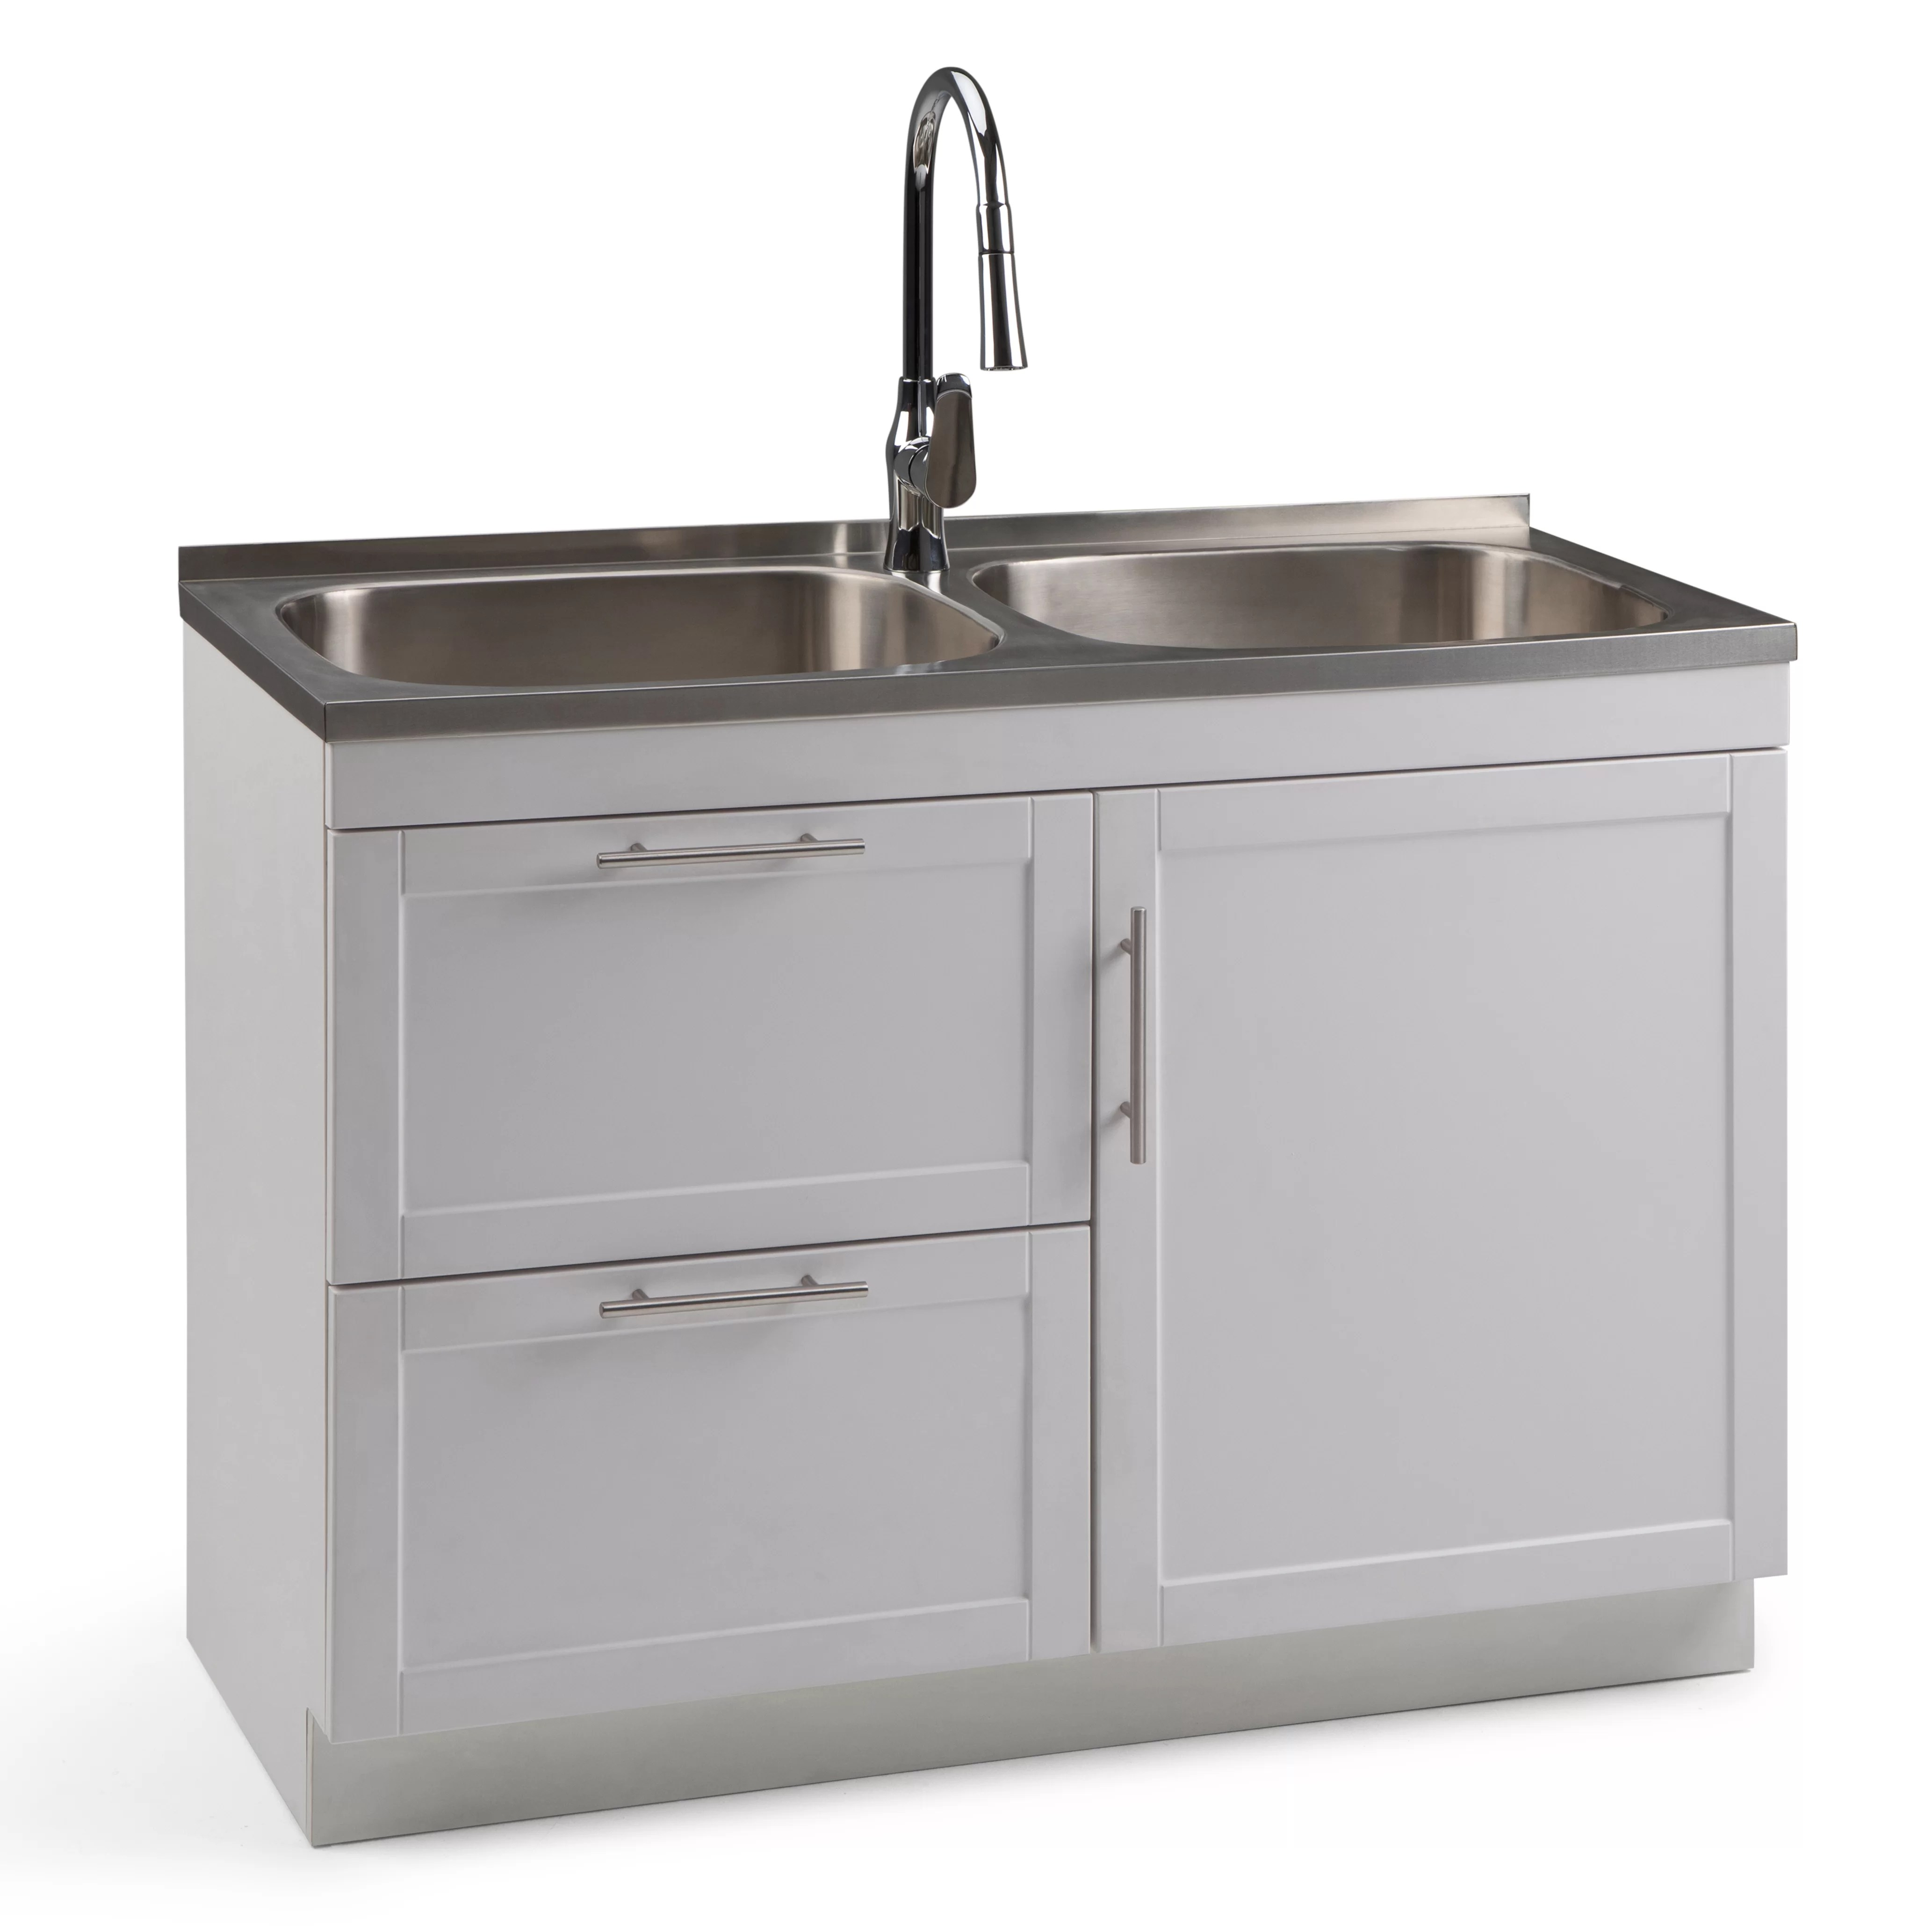 stainless steel laundry sink with 10 faucet utility sink heavy duty laundry passionedu vn